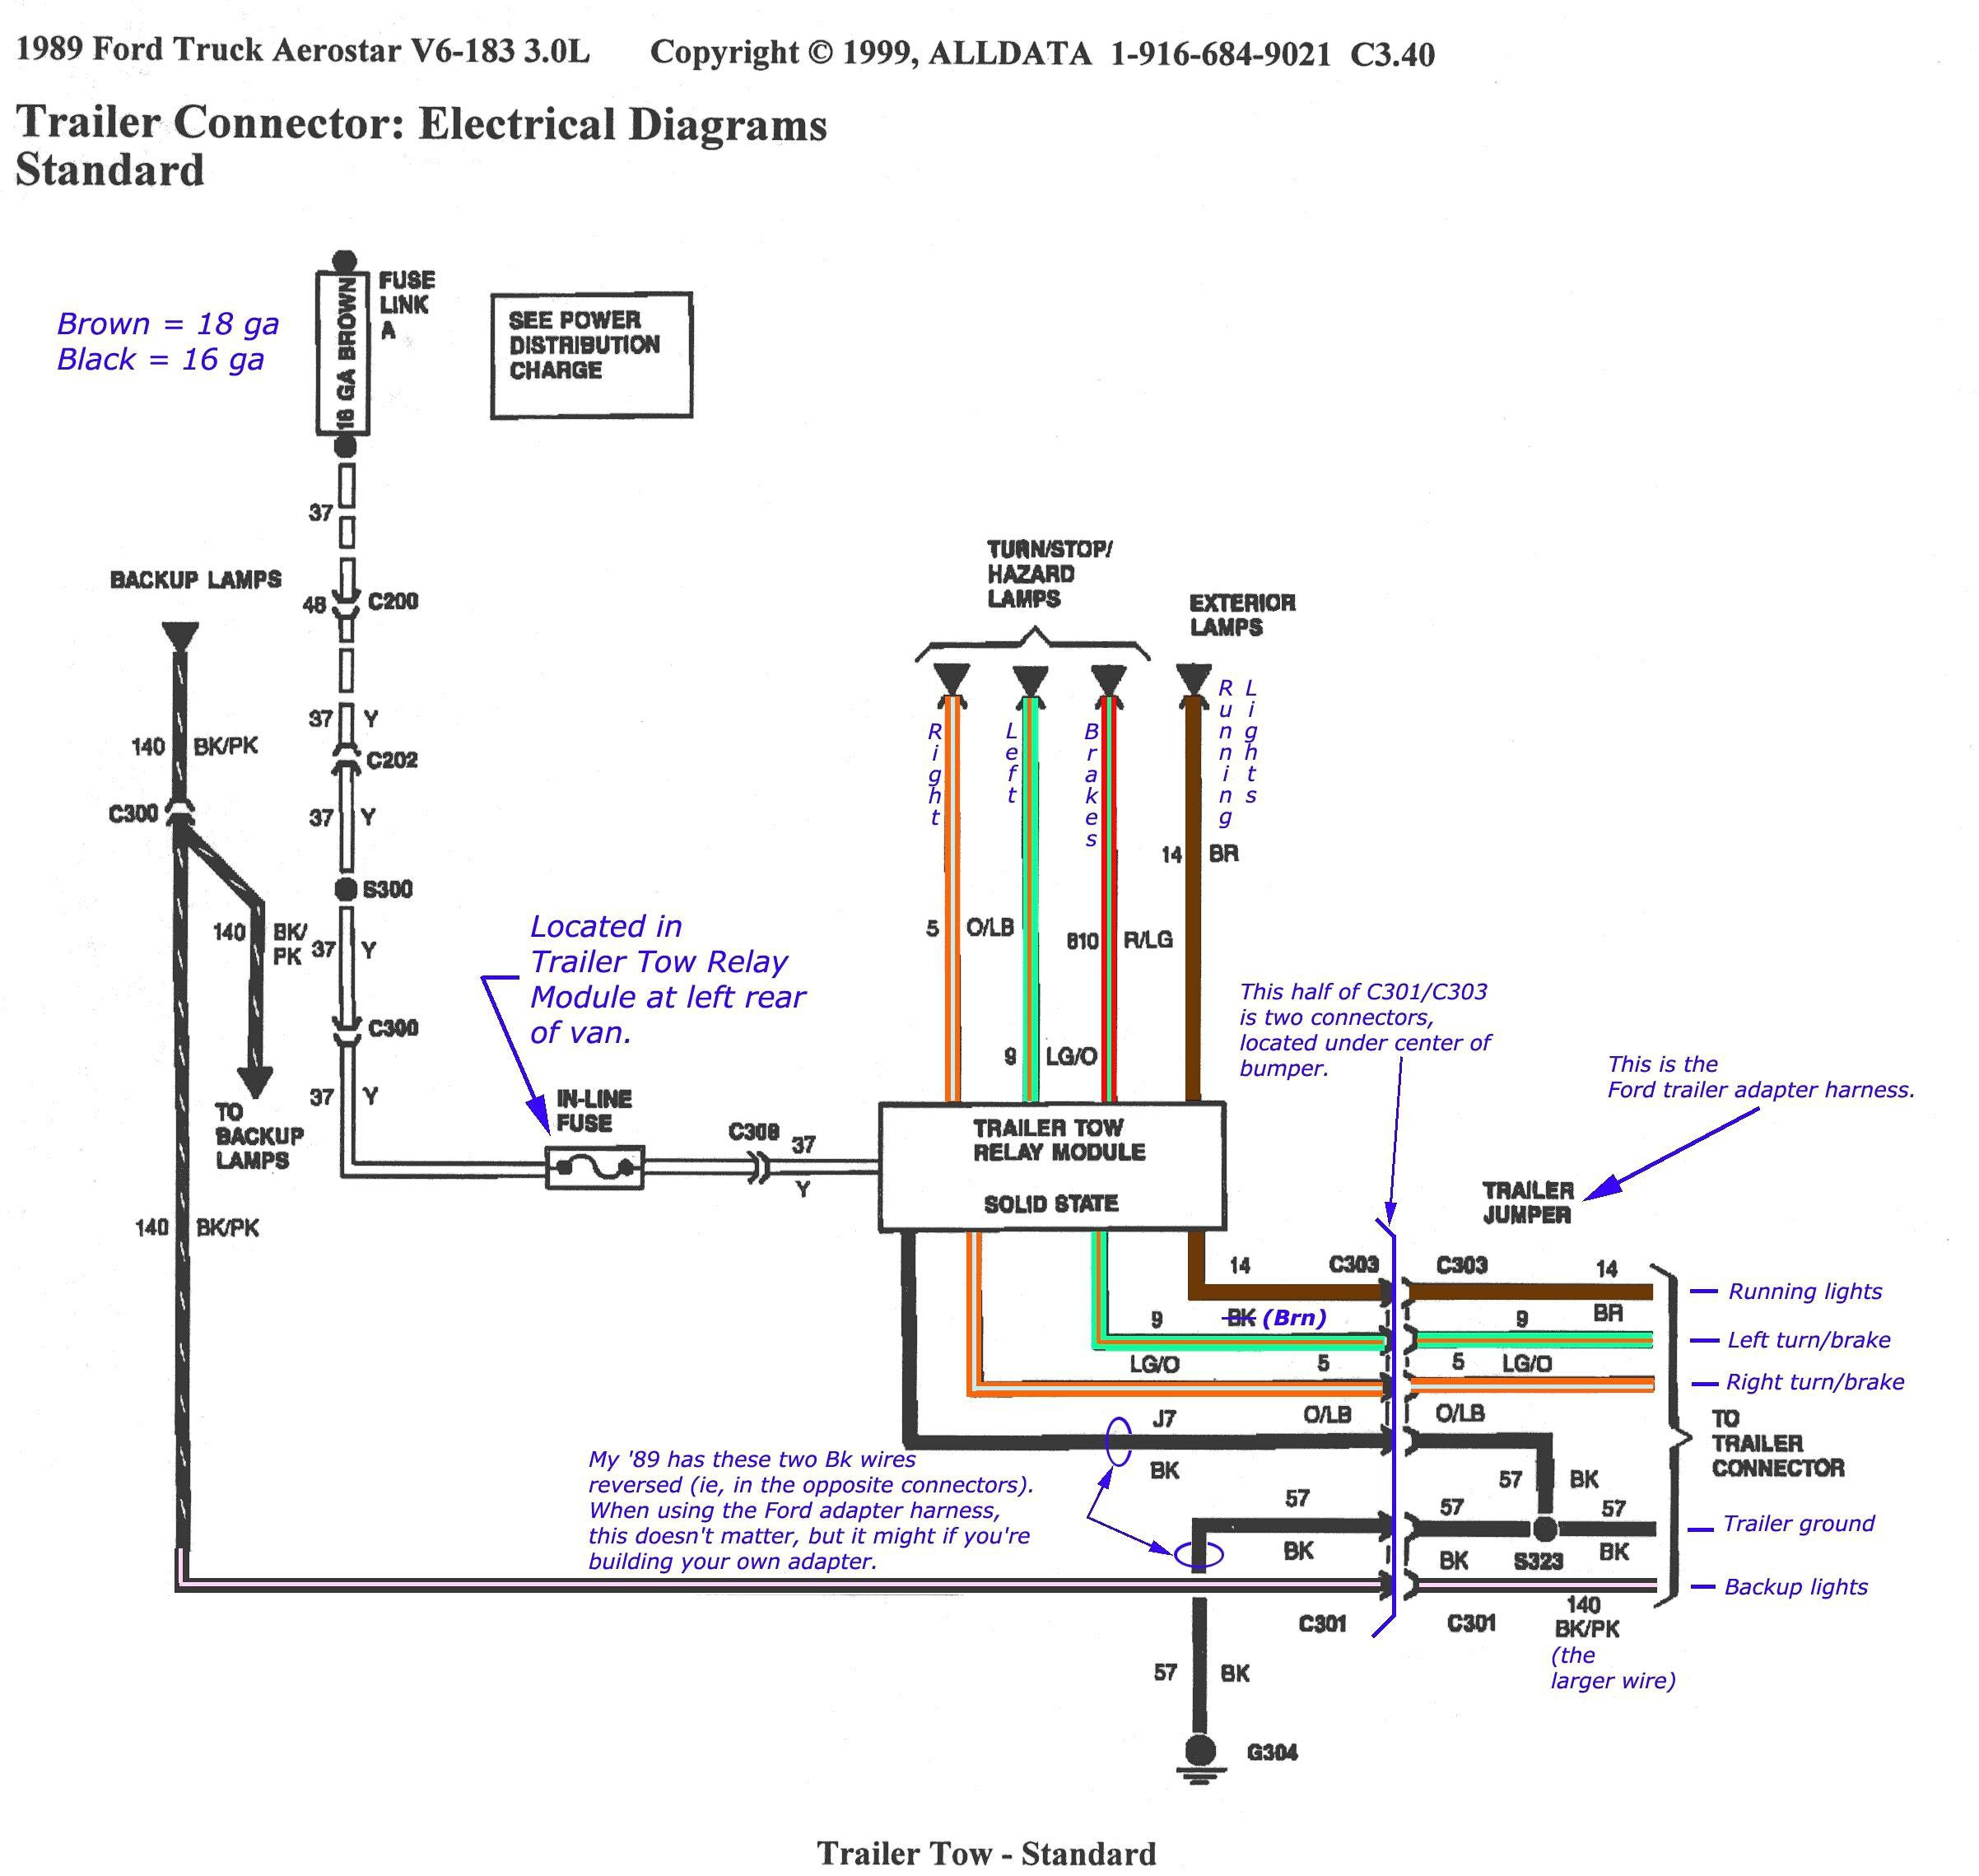 Ford F350 Trailer Wiring Diagram Sample | Wiring Diagram Sample - Ford Trailer Wiring Diagram